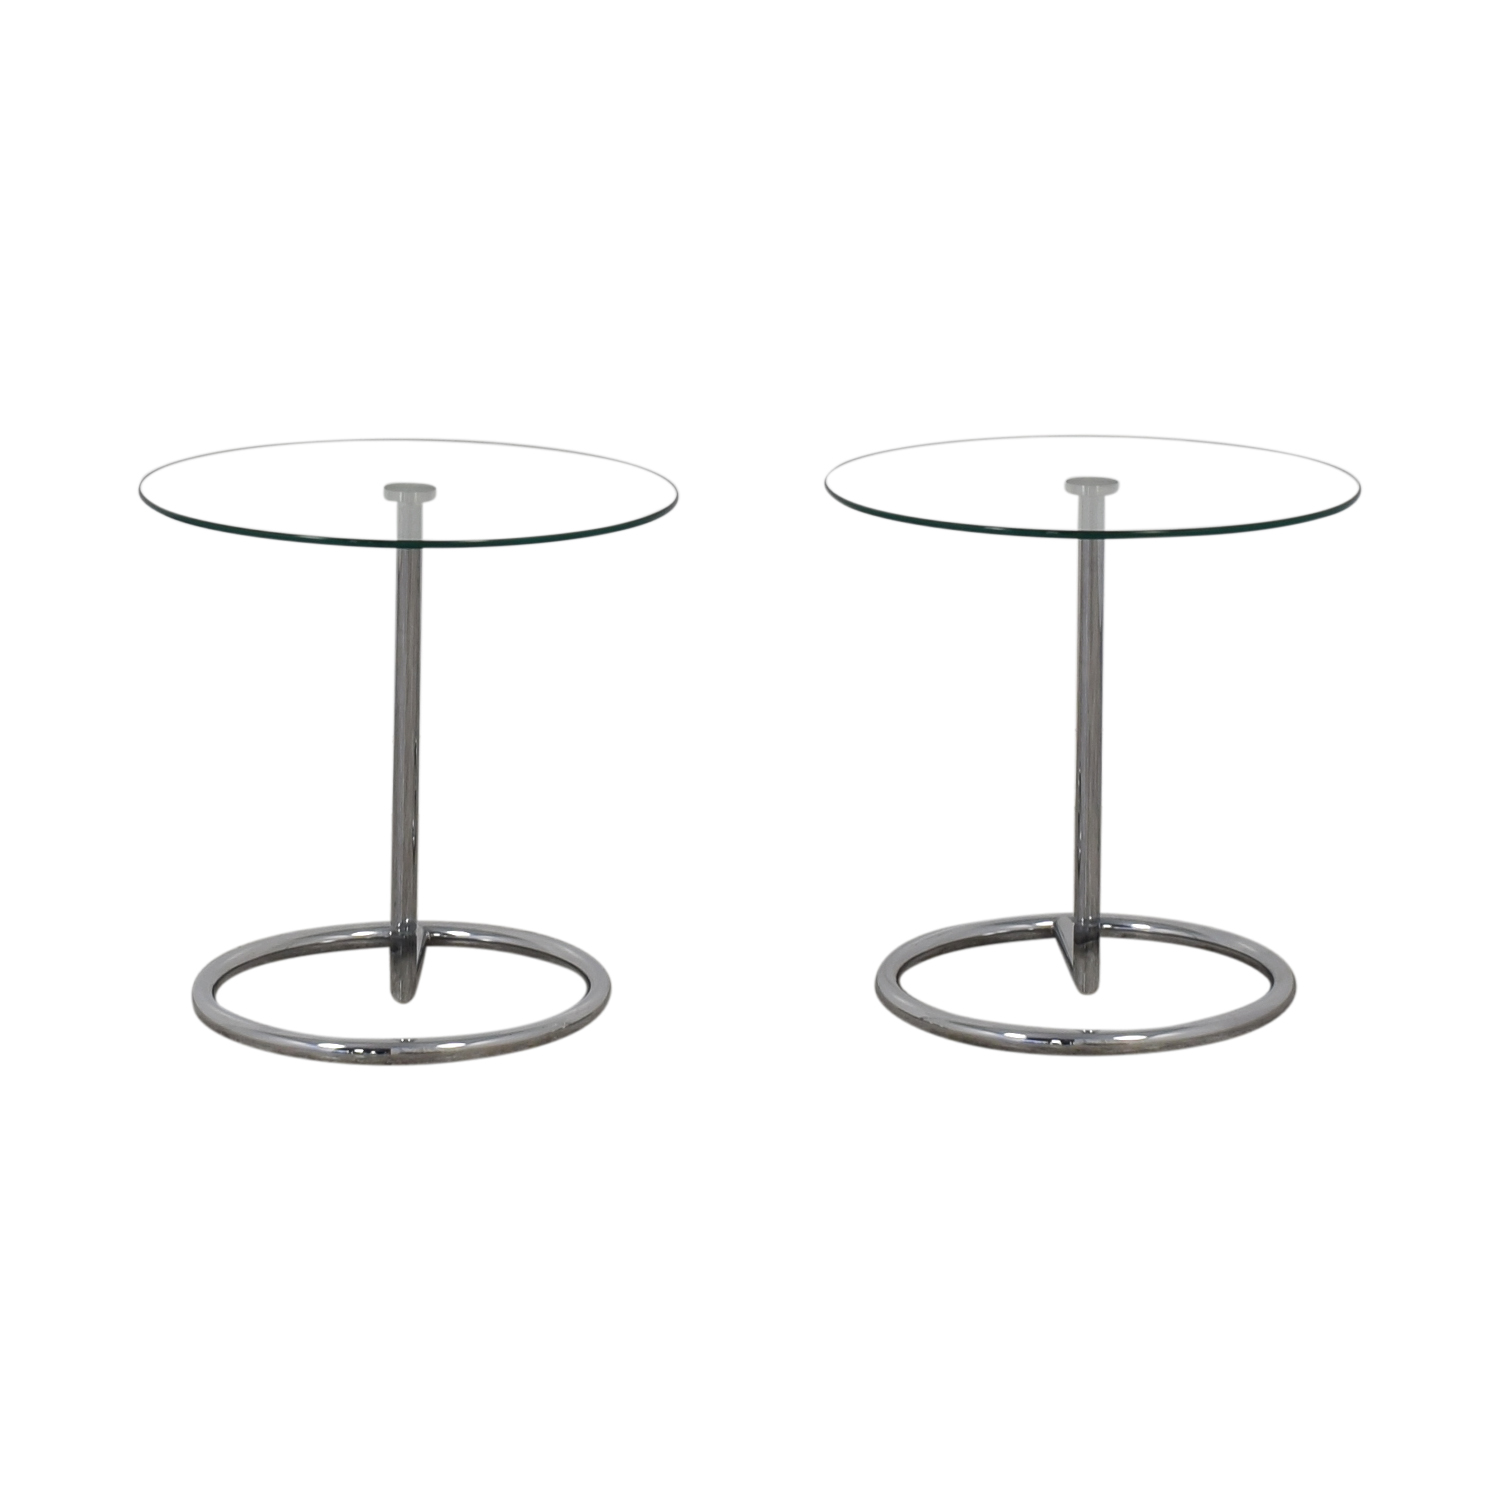 CB2 Round Glass Cocktail Tables / End Tables